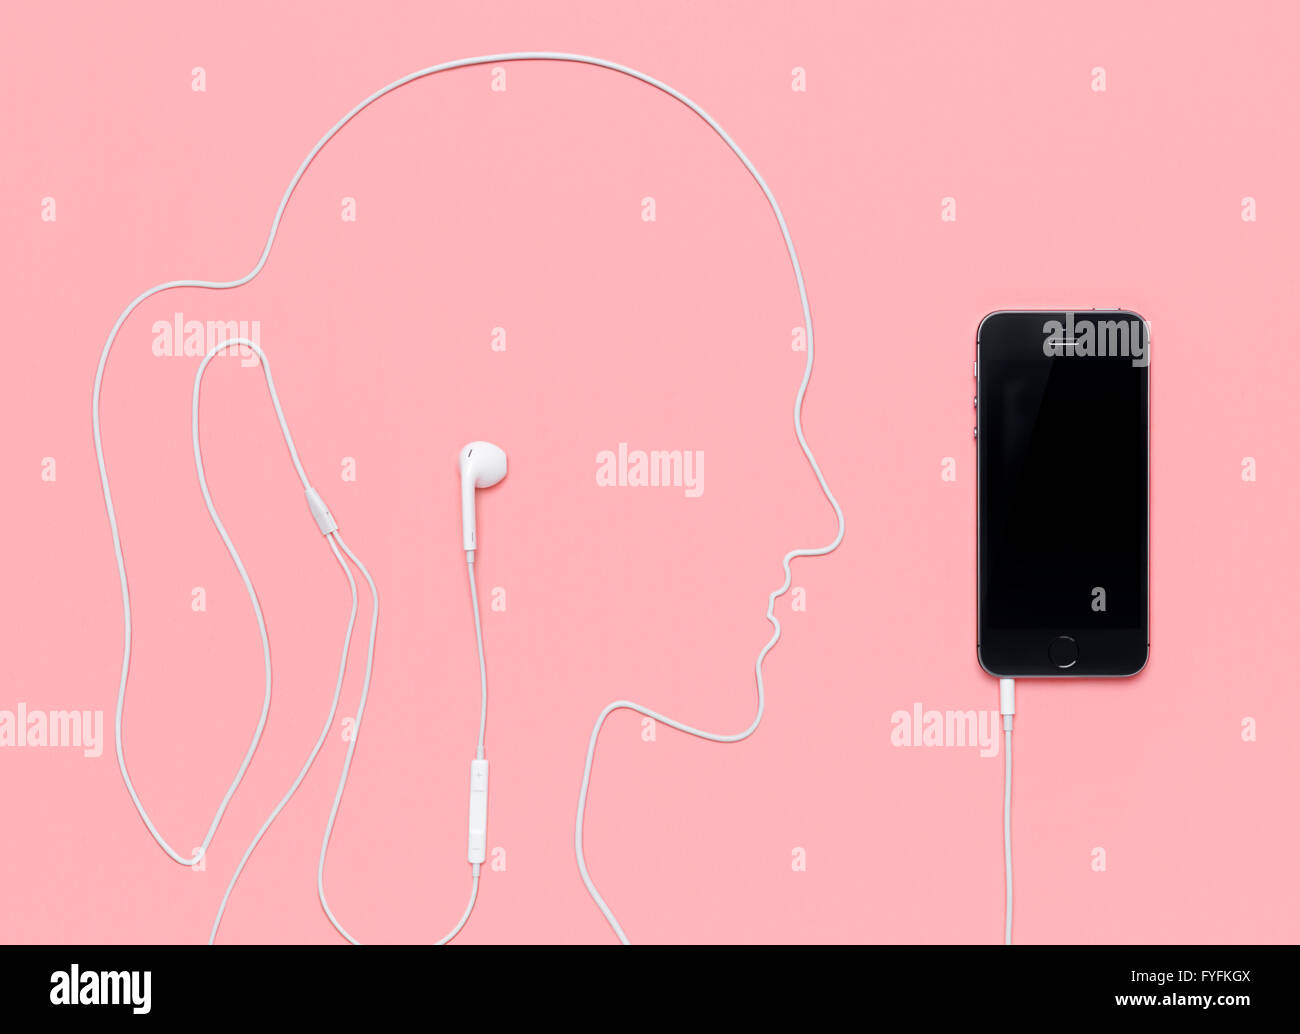 Headphone cable laid out in the shape of a woman's head plugged into an iPhone 5s - Stock Image